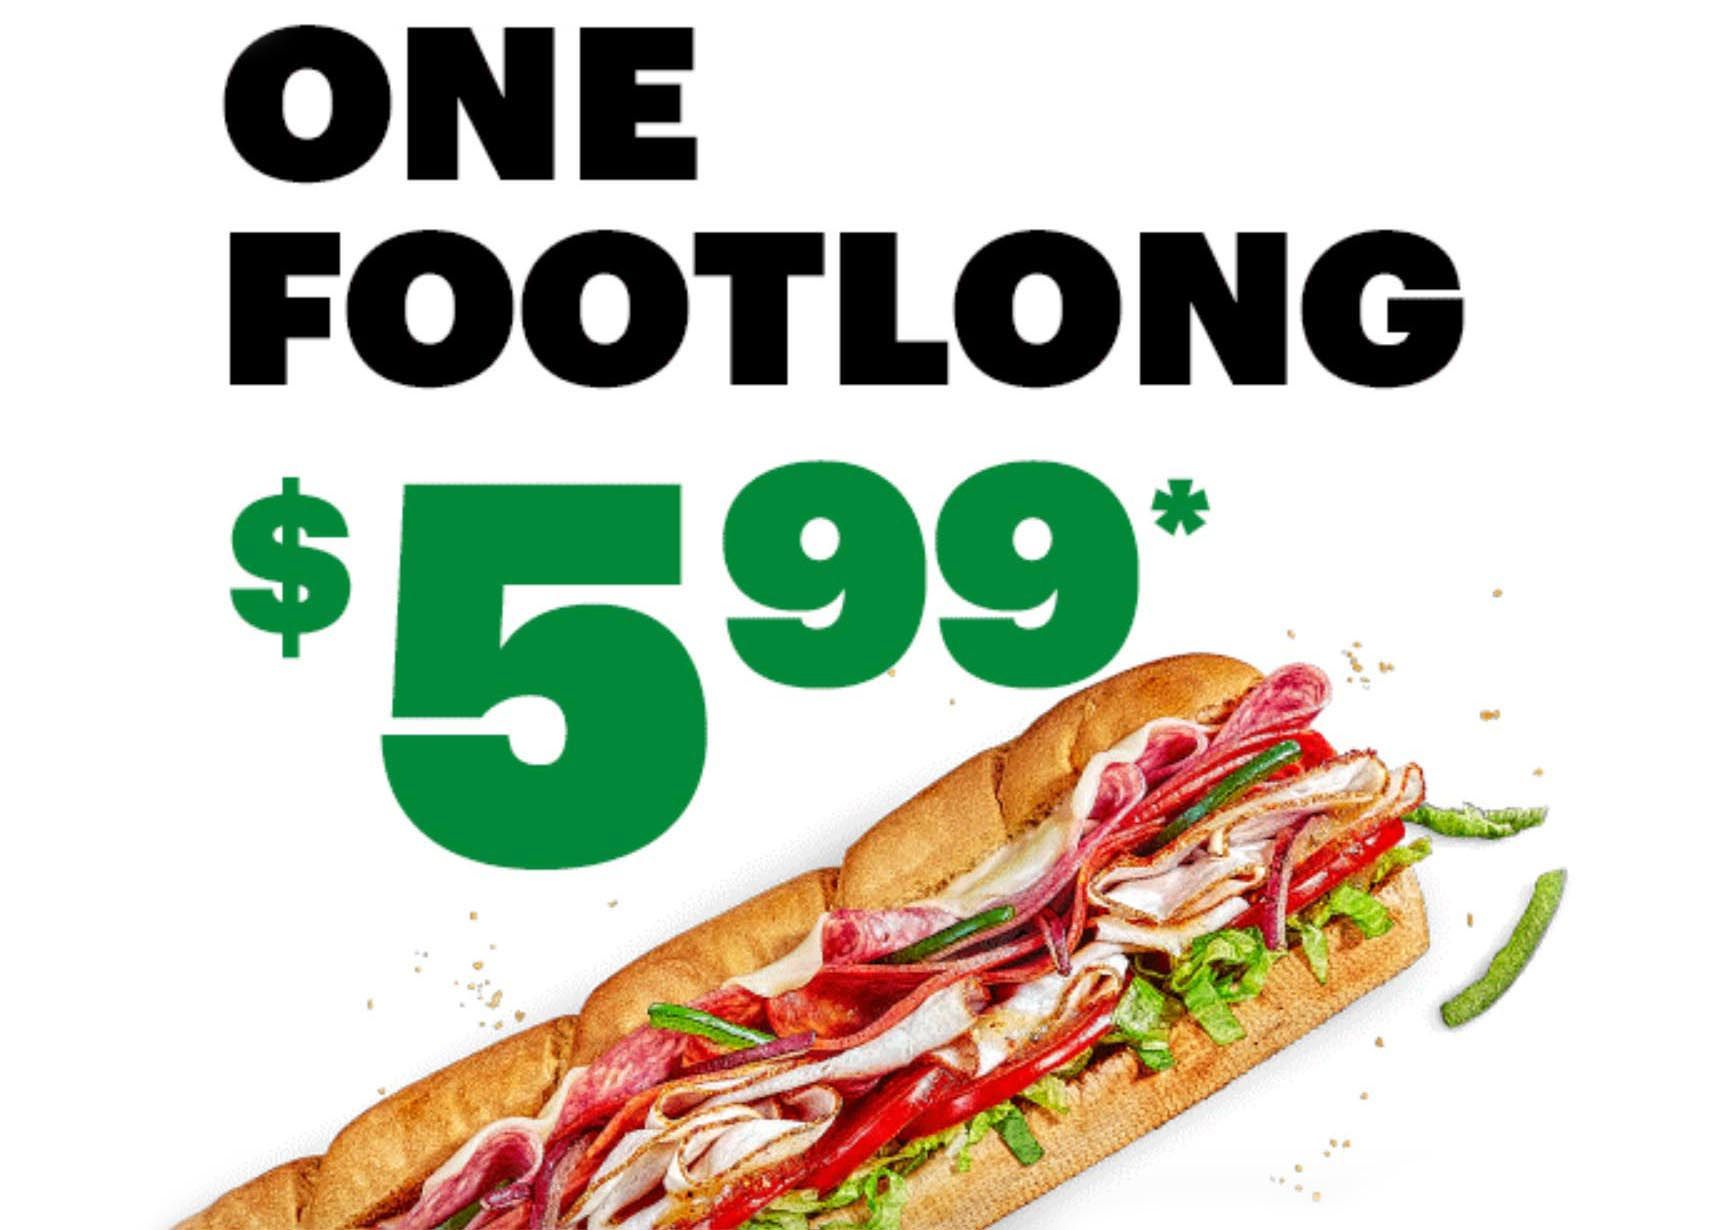 MyWay Rewards Members Can Get a $5.99 Footlong to Celebrate Footlong Friday with an Online or In-app Subway Order